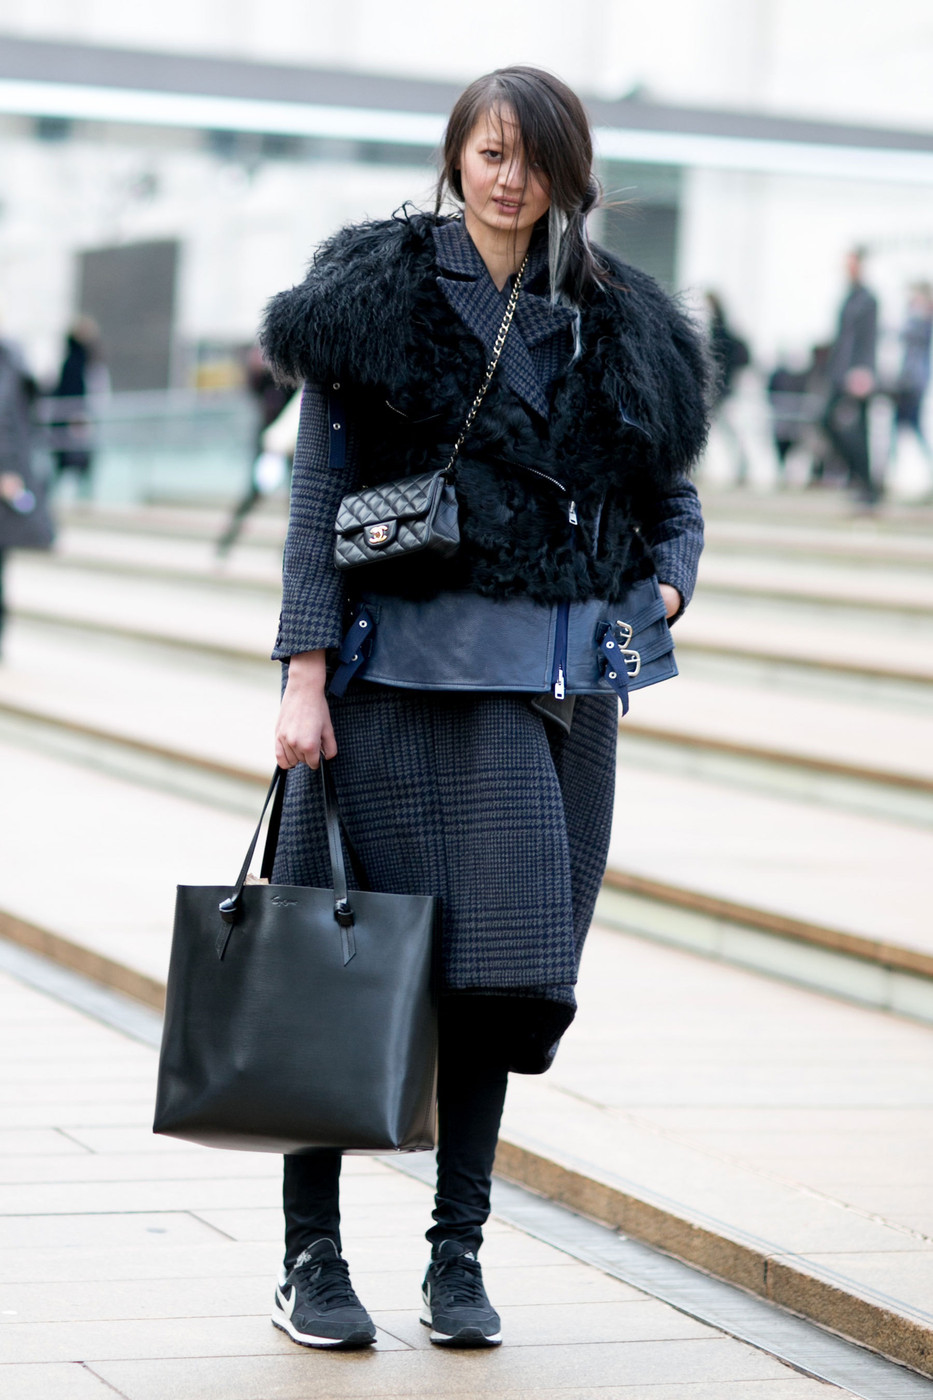 Outerwear Overload Best Street Style From New York Fashion Week Fall 2015 Stylebistro